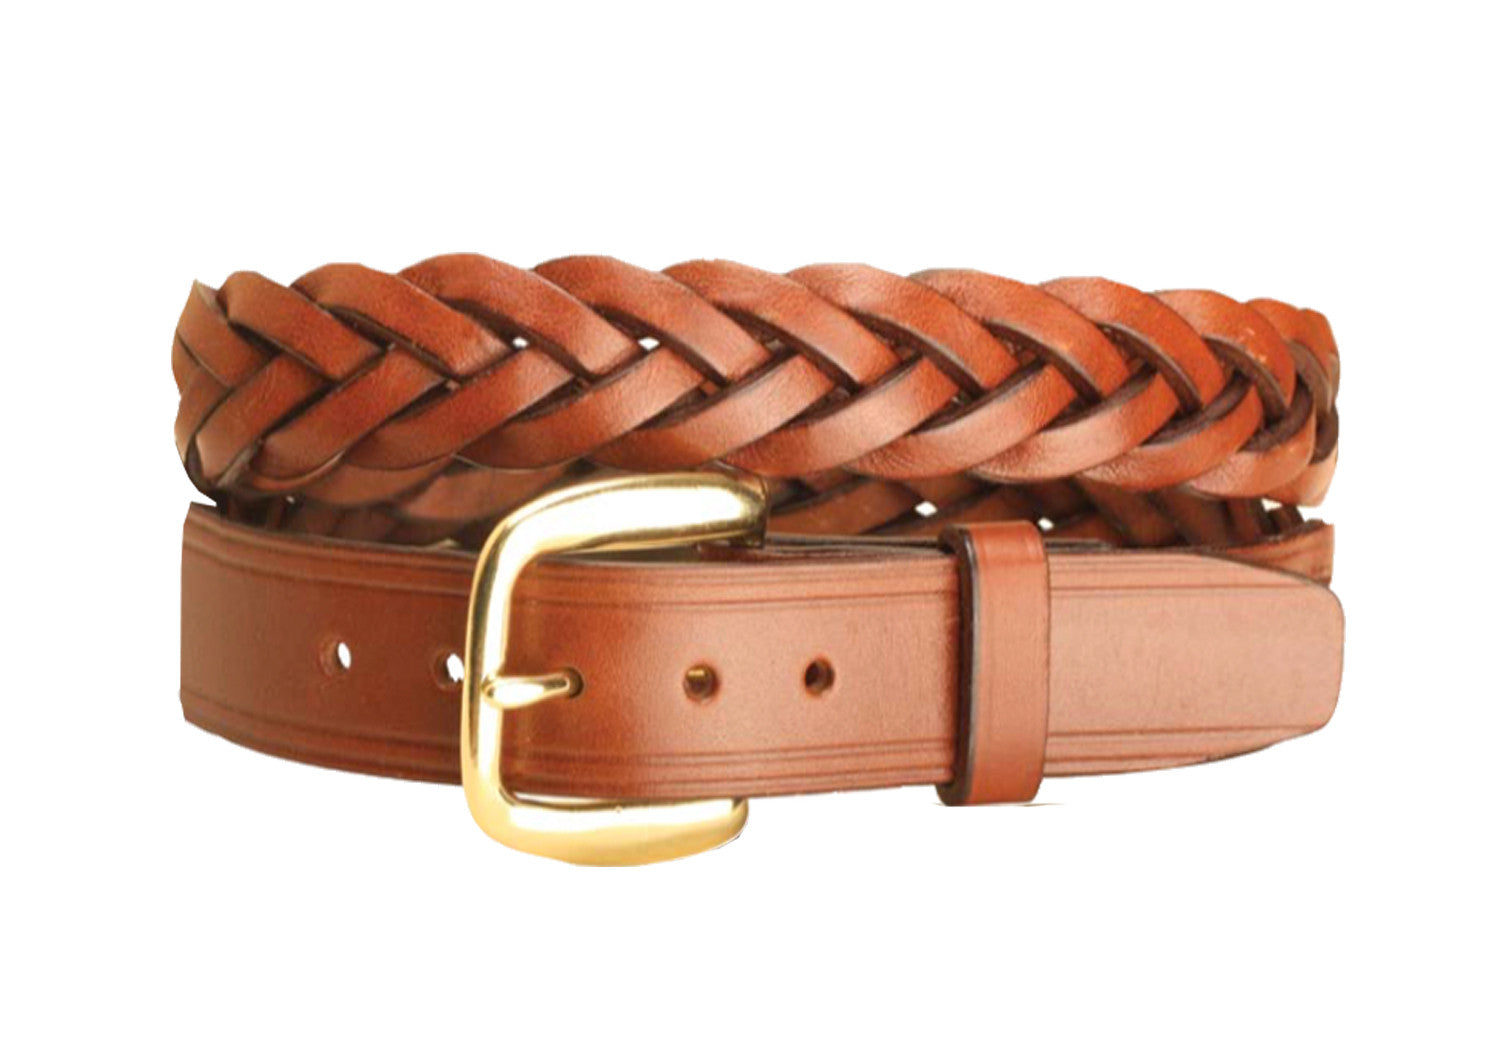 "Tory Leather 1 1/4"" Braided Leather Belt - North Shore Saddlery"